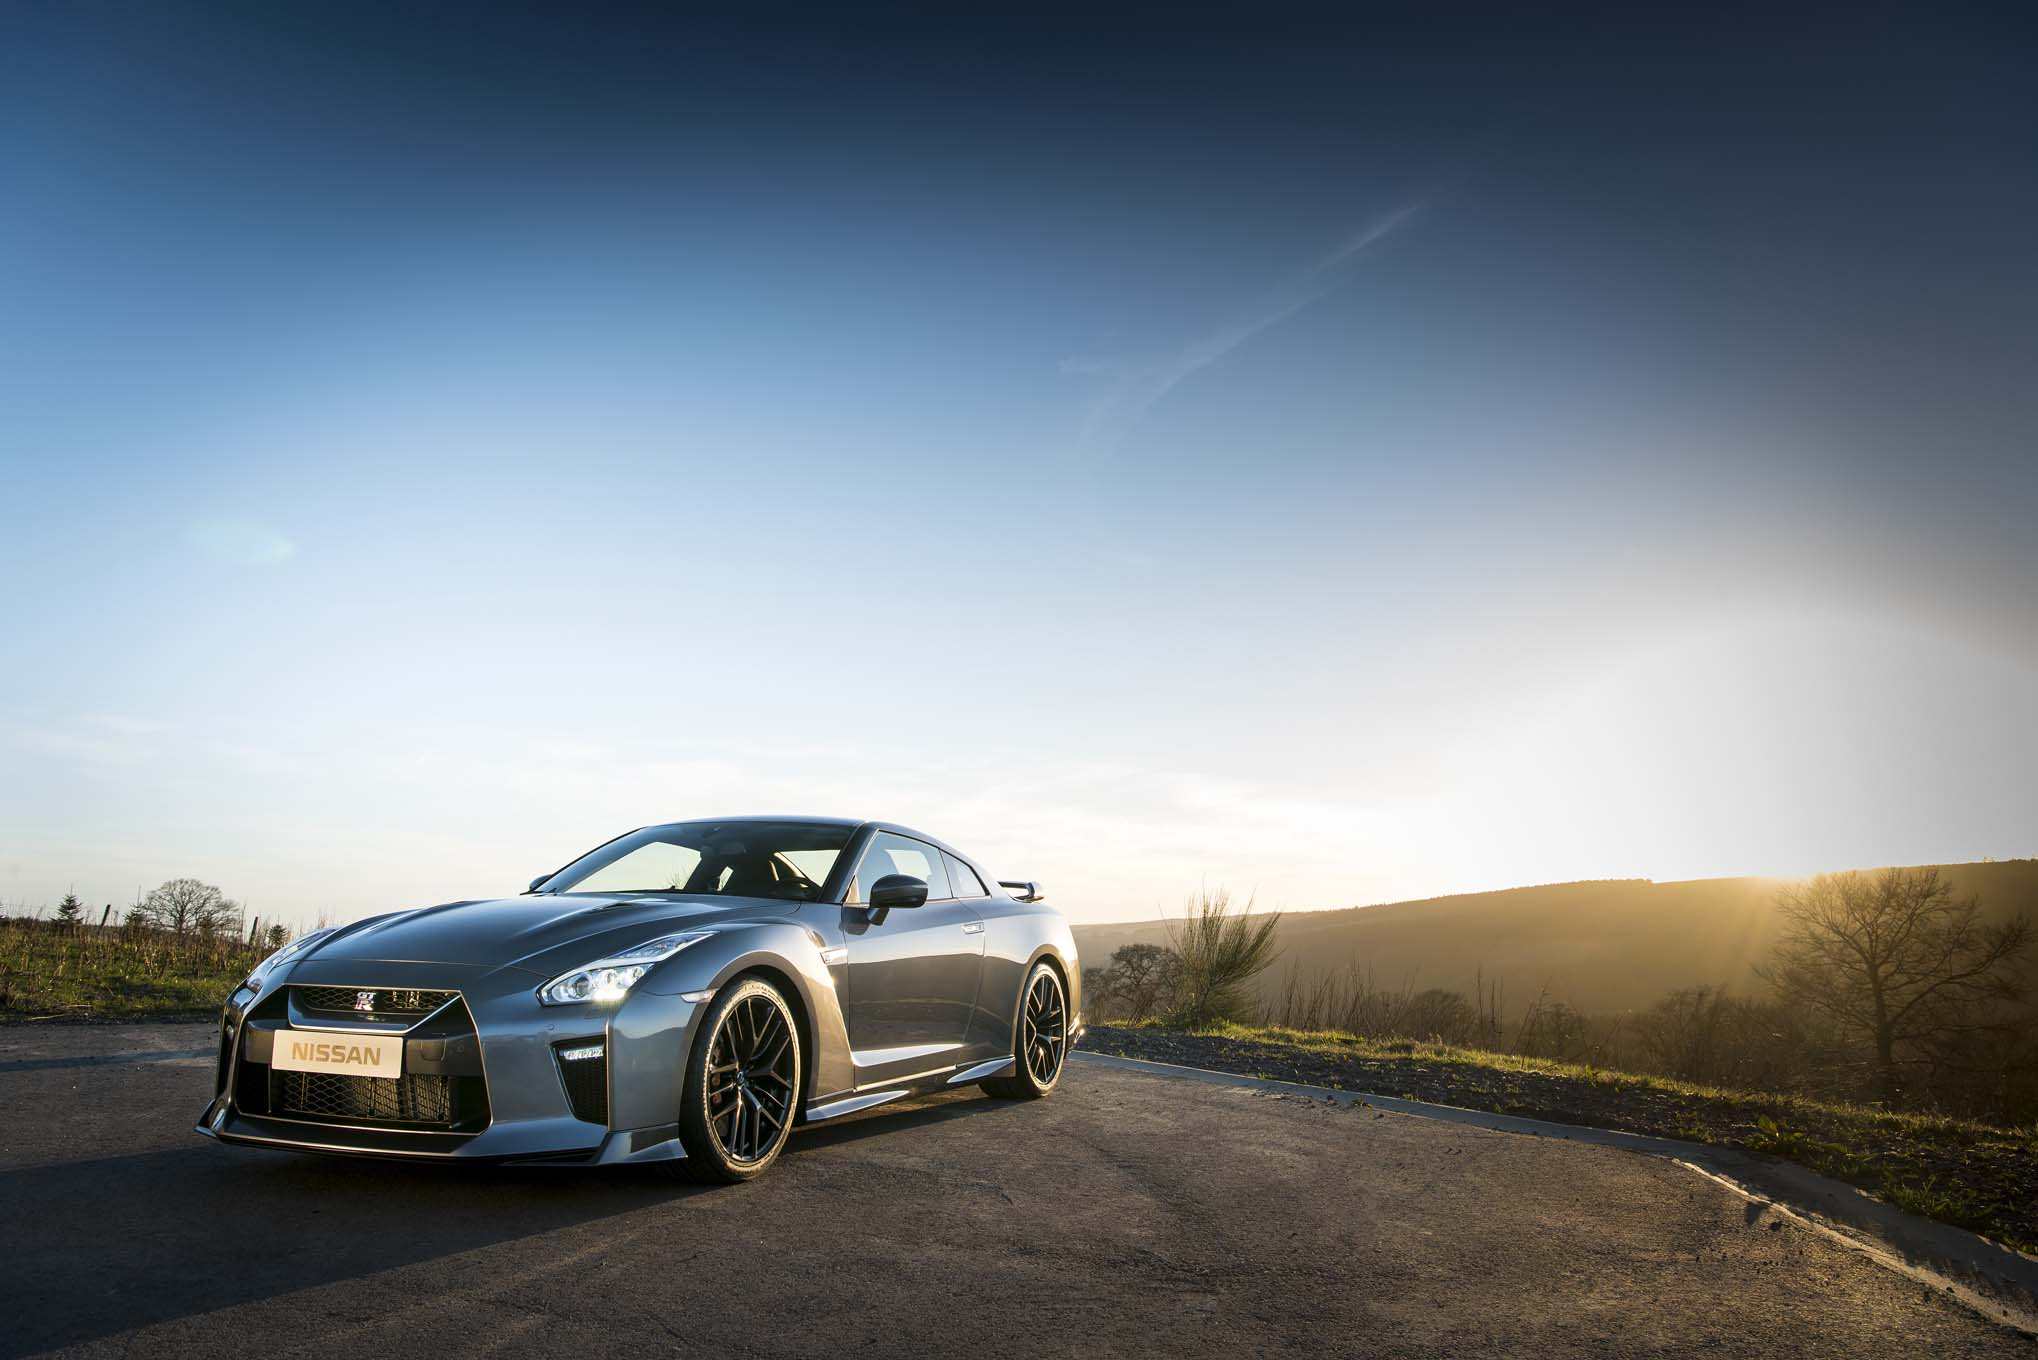 2017 Nissan Gtr First Look Wallpaper Hd: 2017 Nissan GT-R First Drive Review